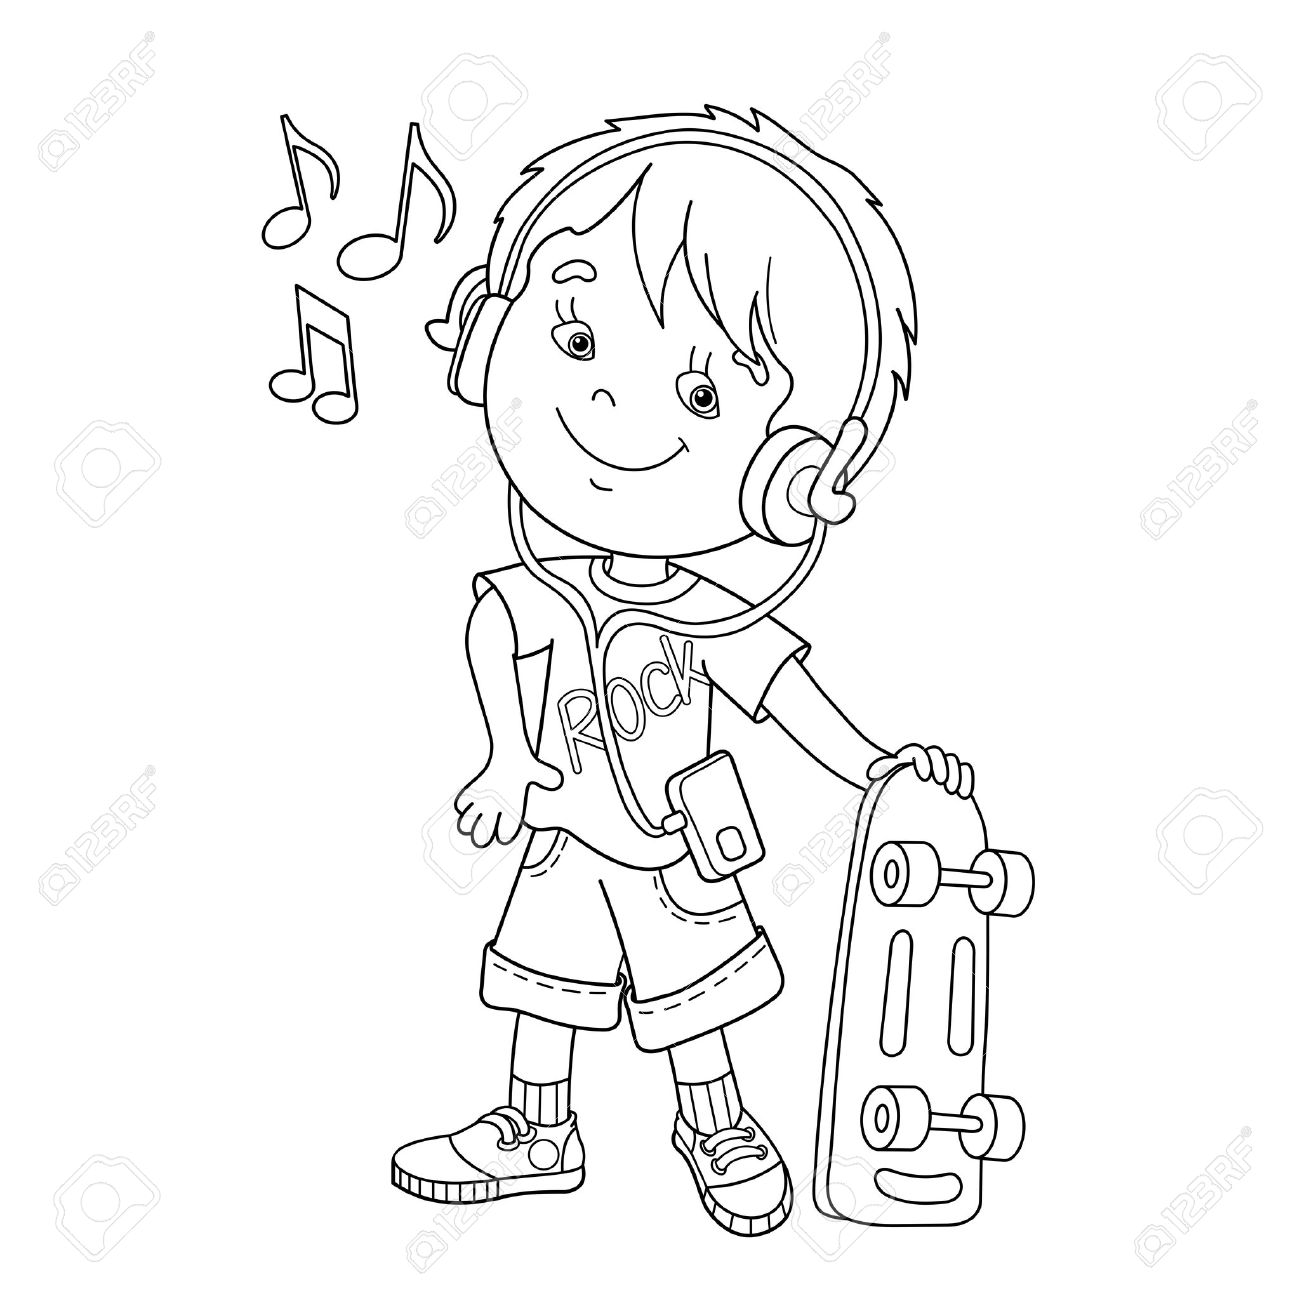 Coloring Page Outline Of Cartoon Boy In Headphones With Skateboard Listening To Music Book